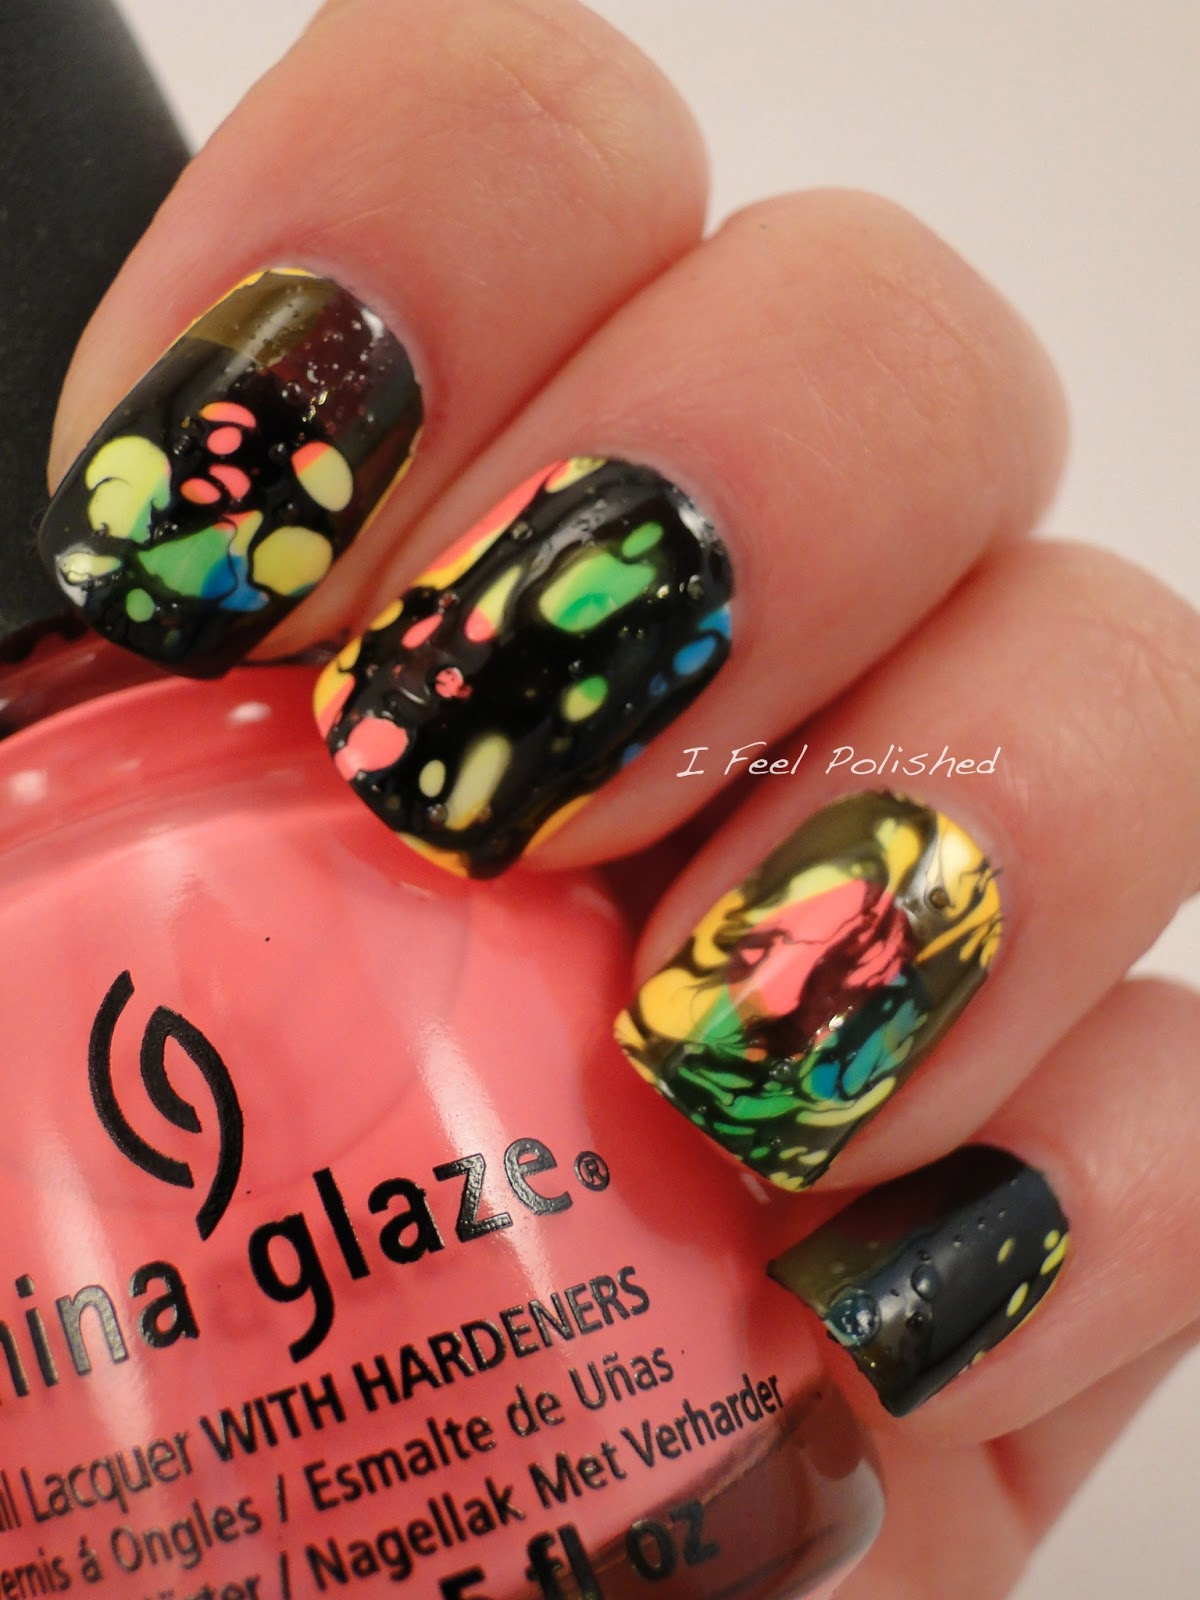 31dc2012 Day 10 Gradient Nails: Dope Nails Doe